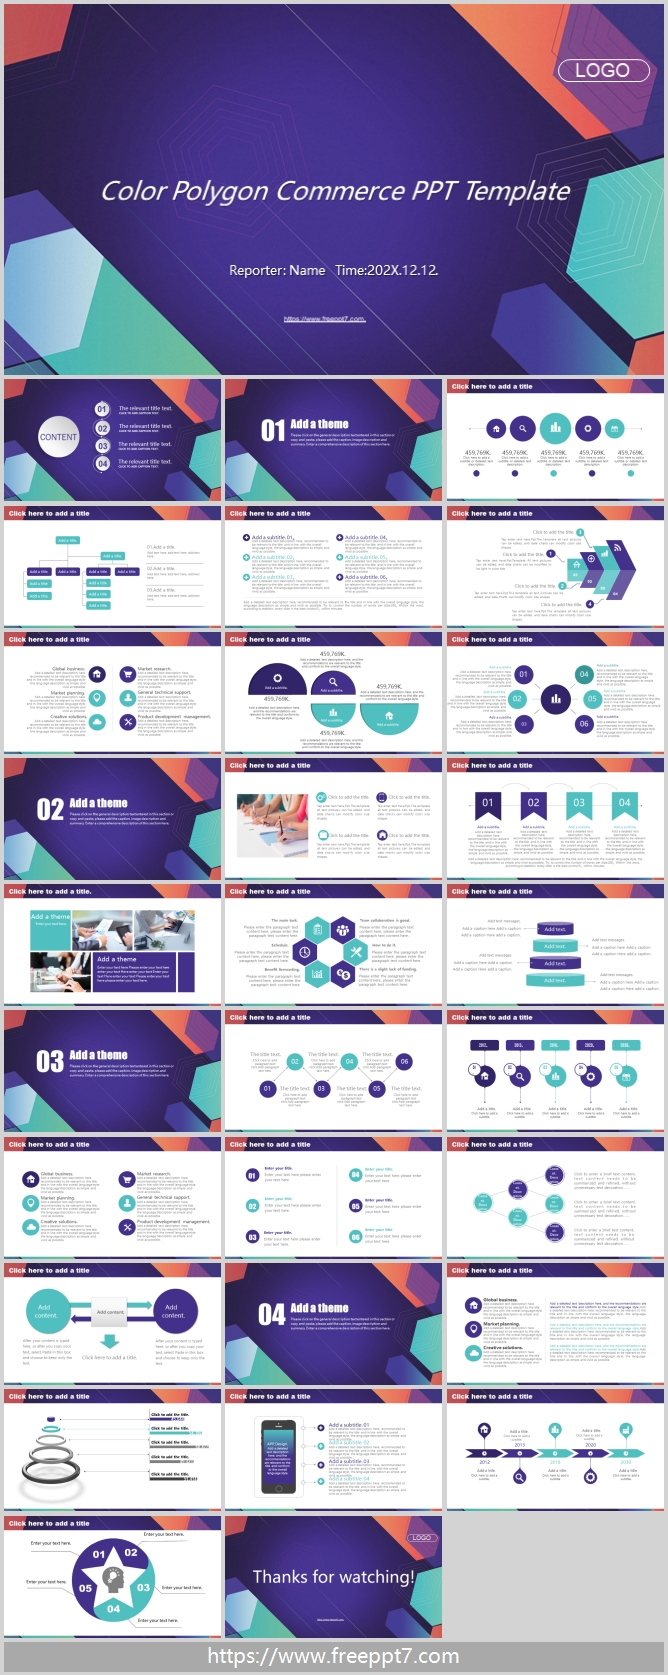 Colored Polygon PPT Templates